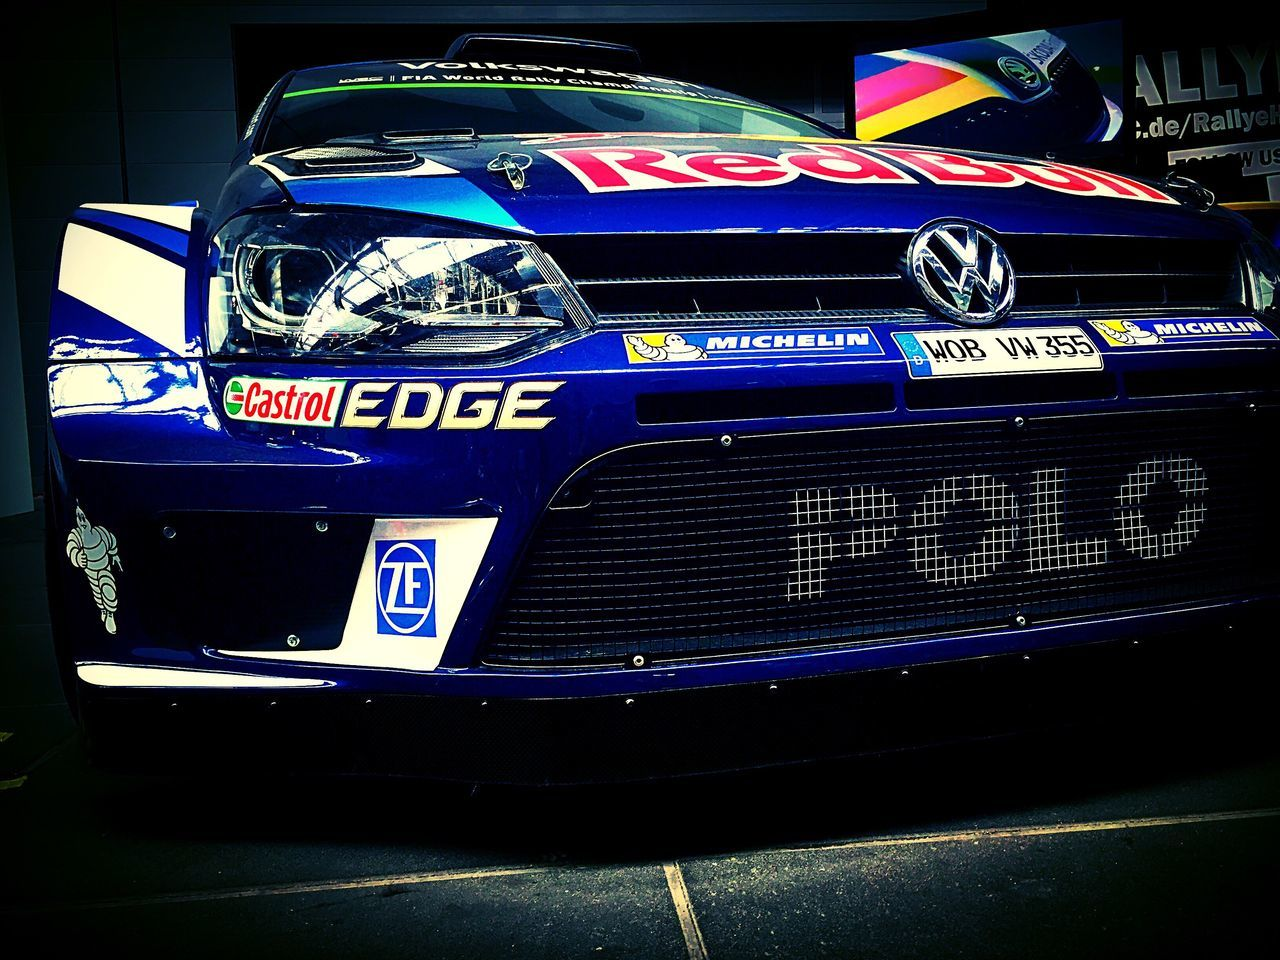 24h Race Nuerburgring Autorennen Car Racing Racing Car Blue Volkswagon Polo VW Racing Car EyeEm Gallery Coulerful EyeEmBestPics EyeEm Best Shots EyeEm Best Edits Eyemphotography Eyeemphotography Eyem Best Shots IPhone Photography